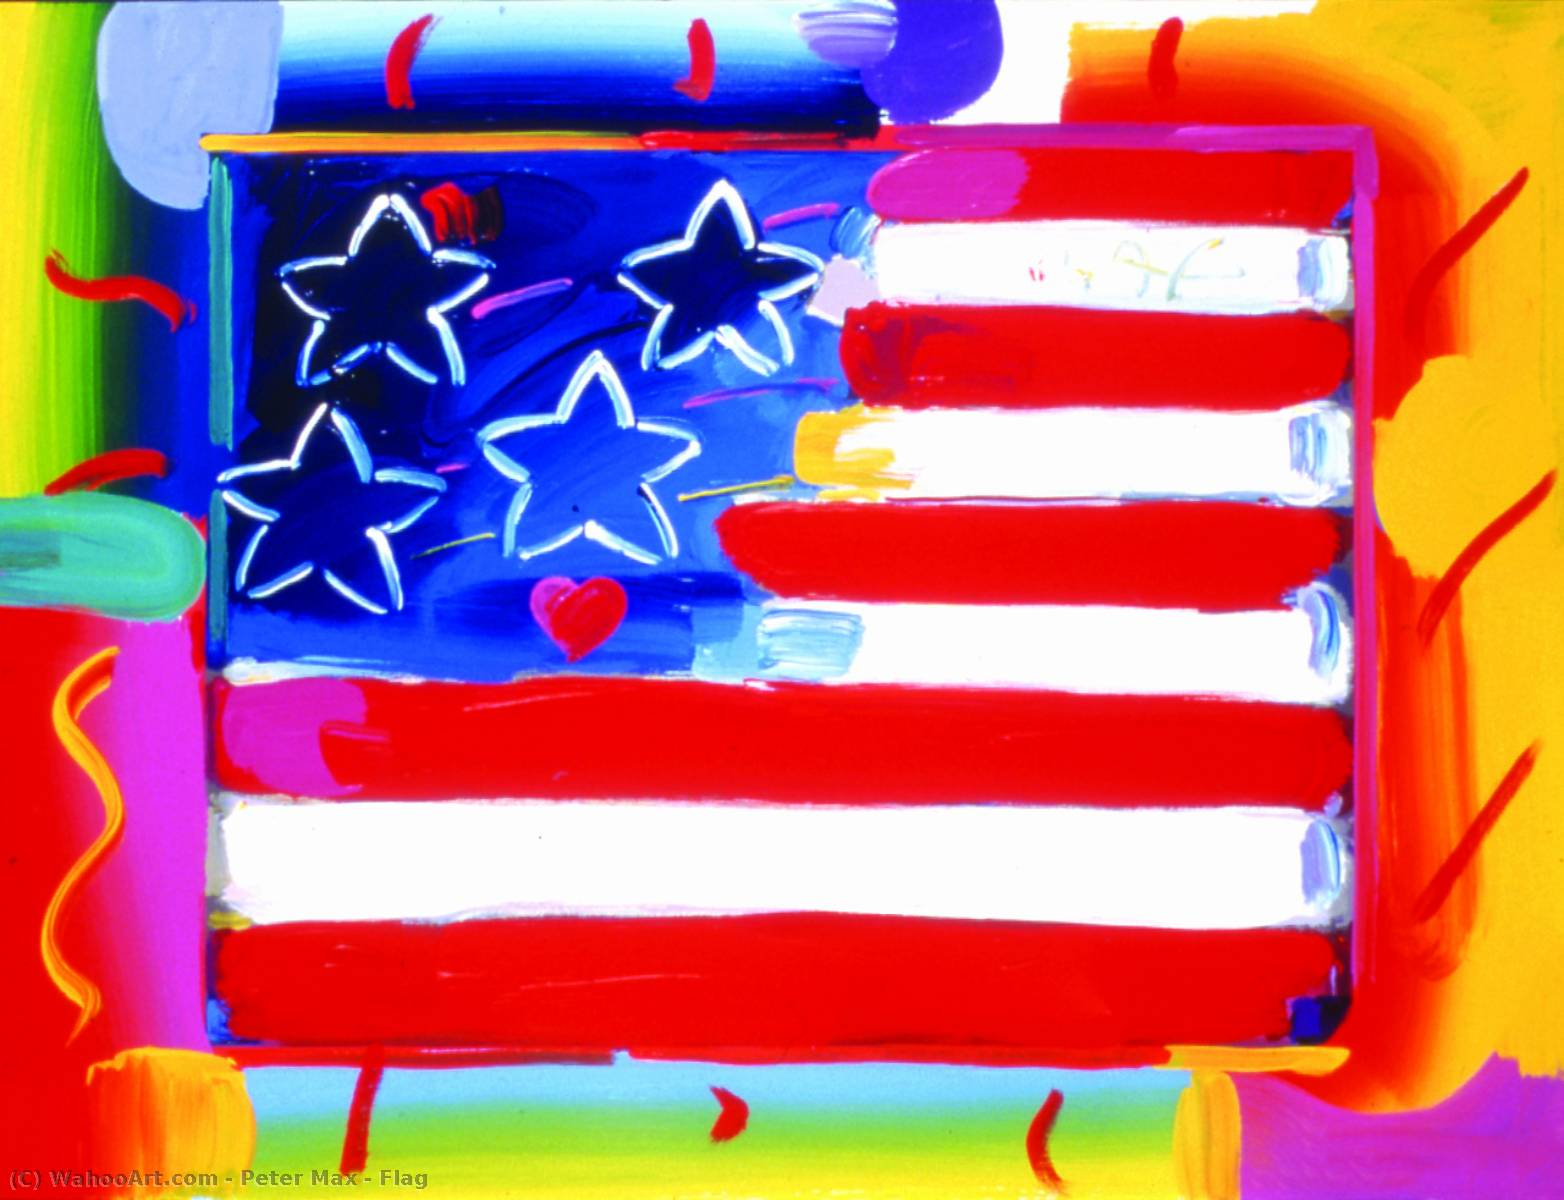 | bandeira por Peter Max | Most-Famous-Paintings.com